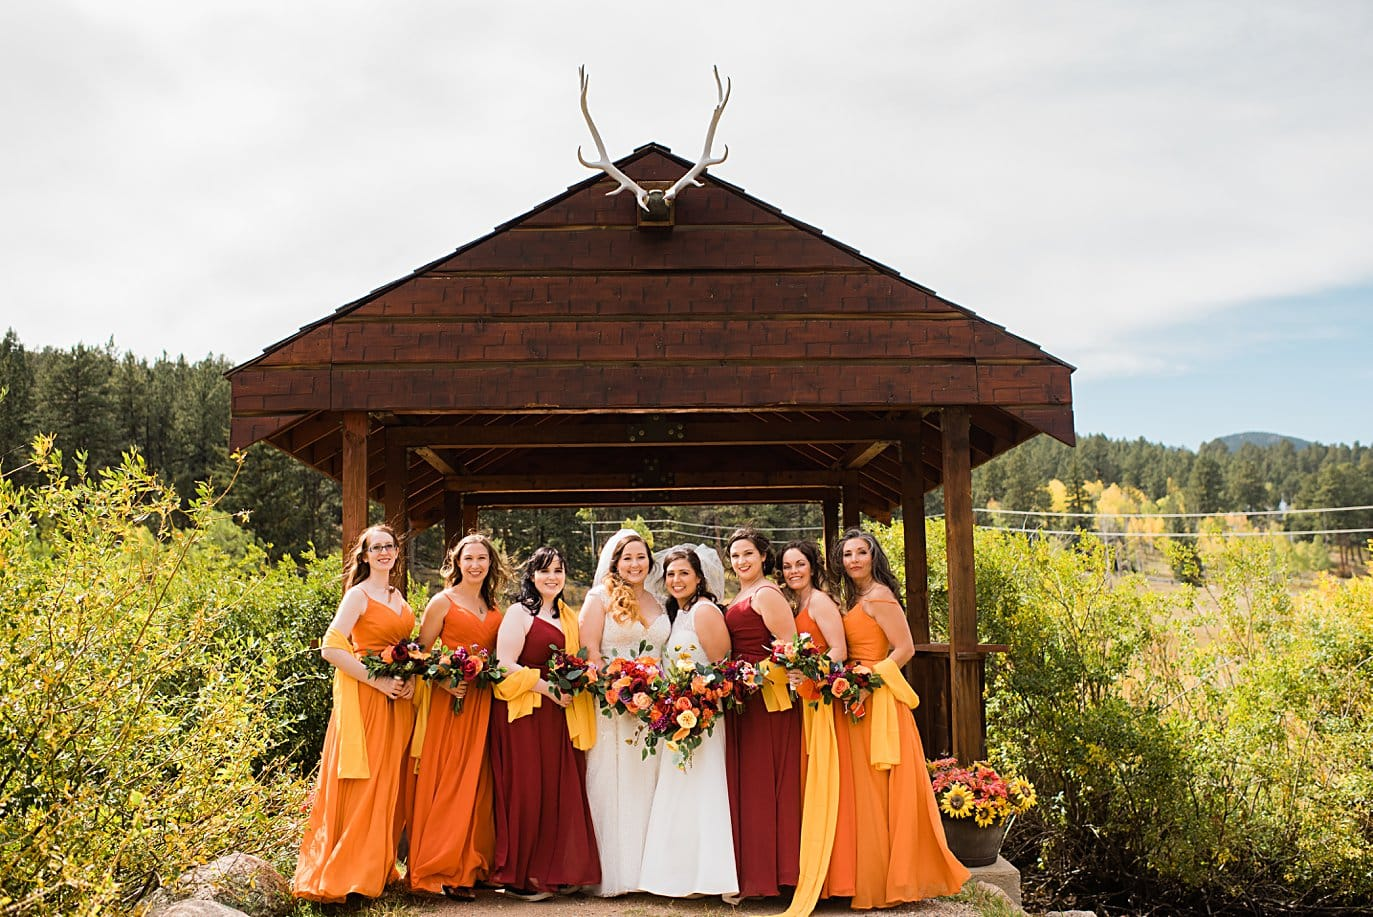 ombre bridesmaids dresses in fall colors at Deer Creek Valley Ranch wedding by Conifer wedding photographer Jennie Crate